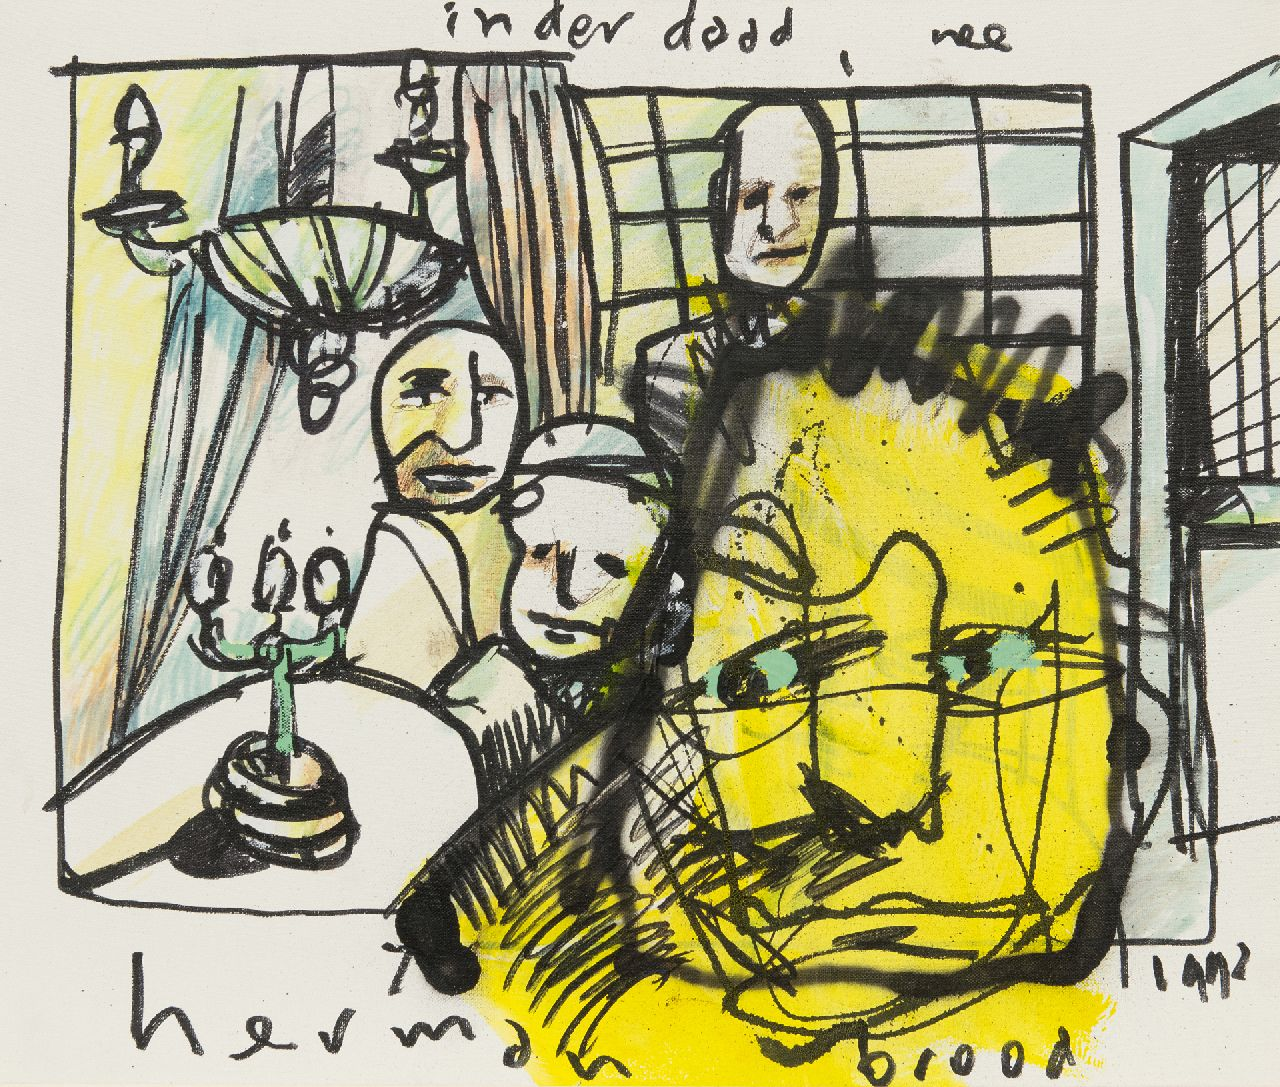 Herman Brood | Inderdaad, nee (Indeed, no), oil on canvas, 50.1 x 60.1 cm, signed l.c. and dated 1992